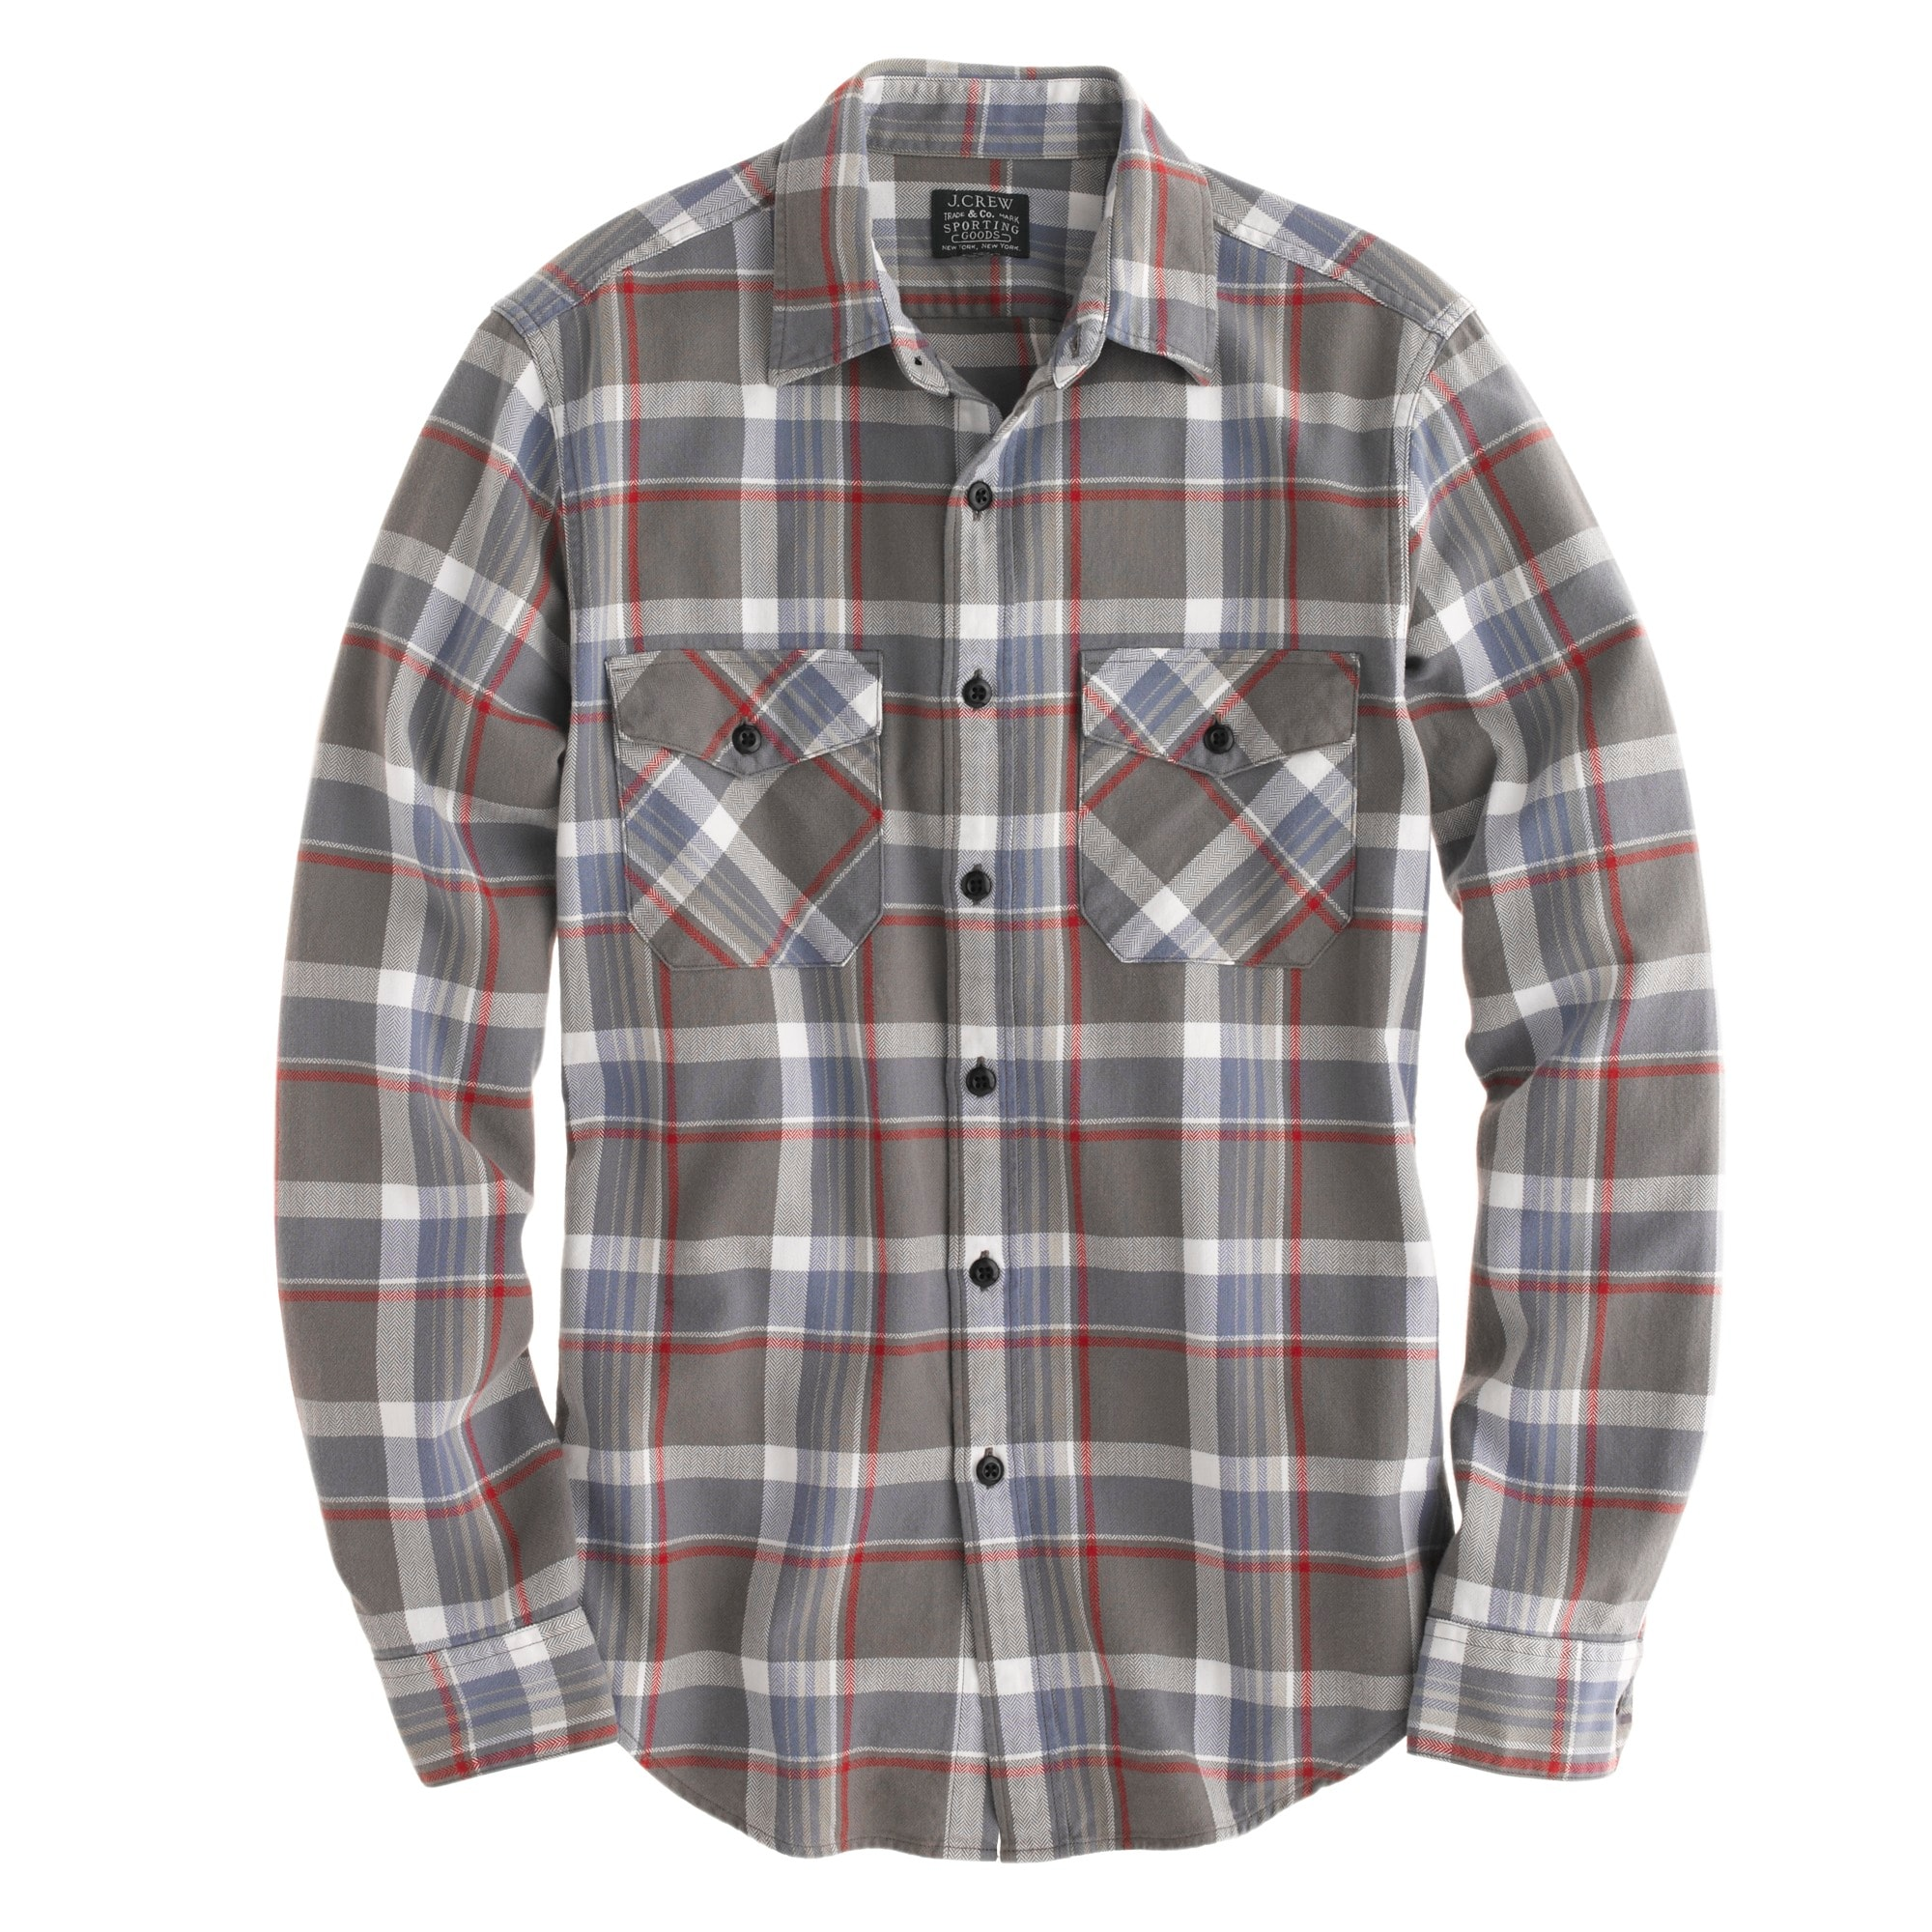 Flannel shirt in wet gravel herringbone plaid